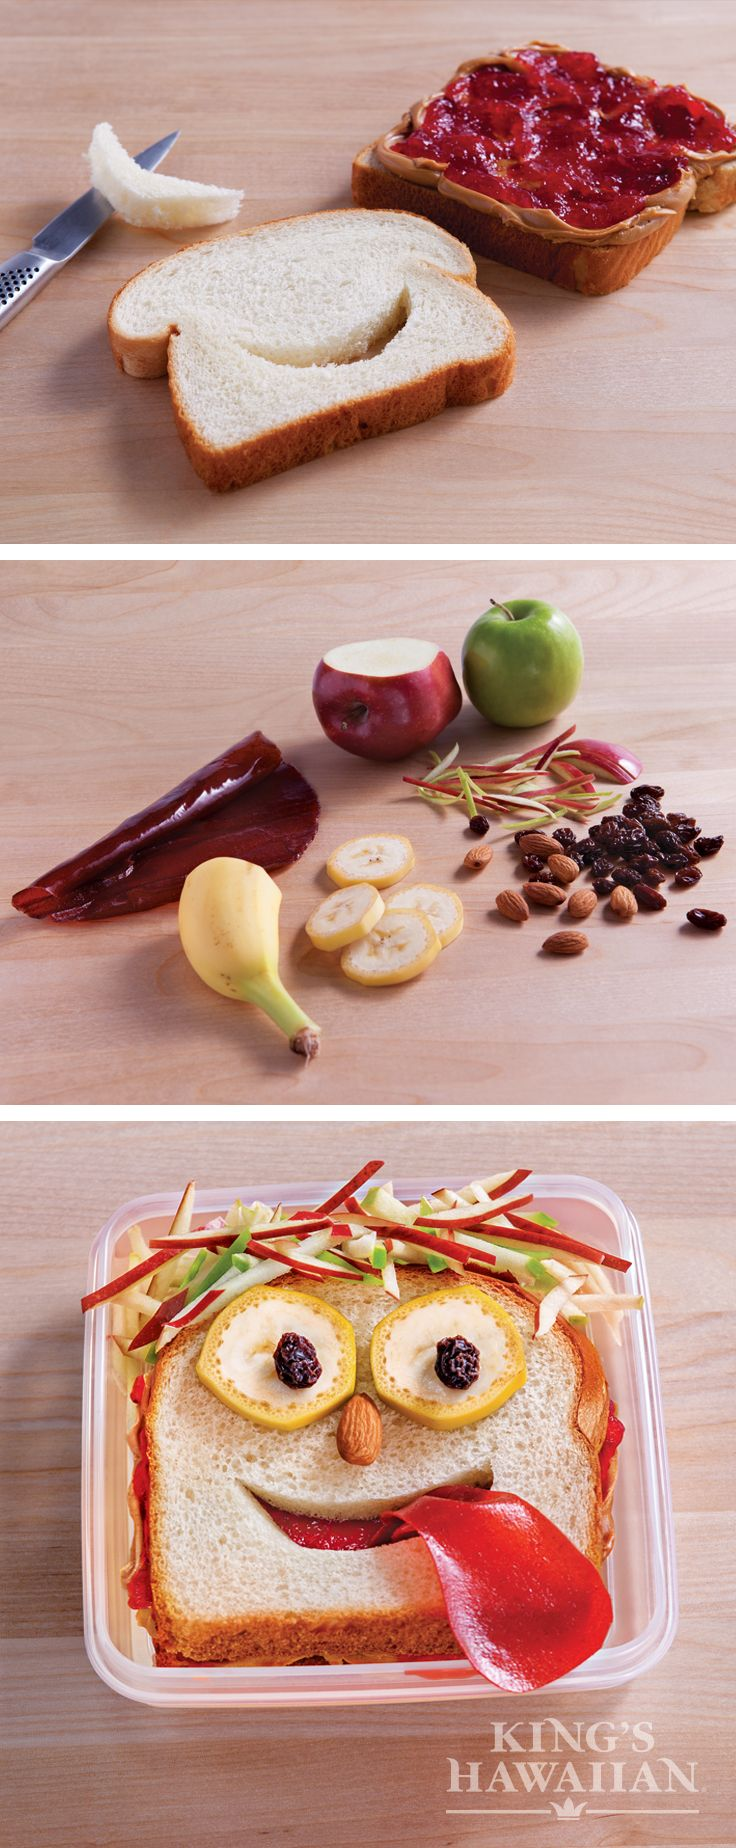 """Wanna give your kid a giggle? Put this oh-so-cute PB&J in their lunchbox. Some shredded apple """"hair"""" and a fruit snack tongue make a new lunchtime friend."""